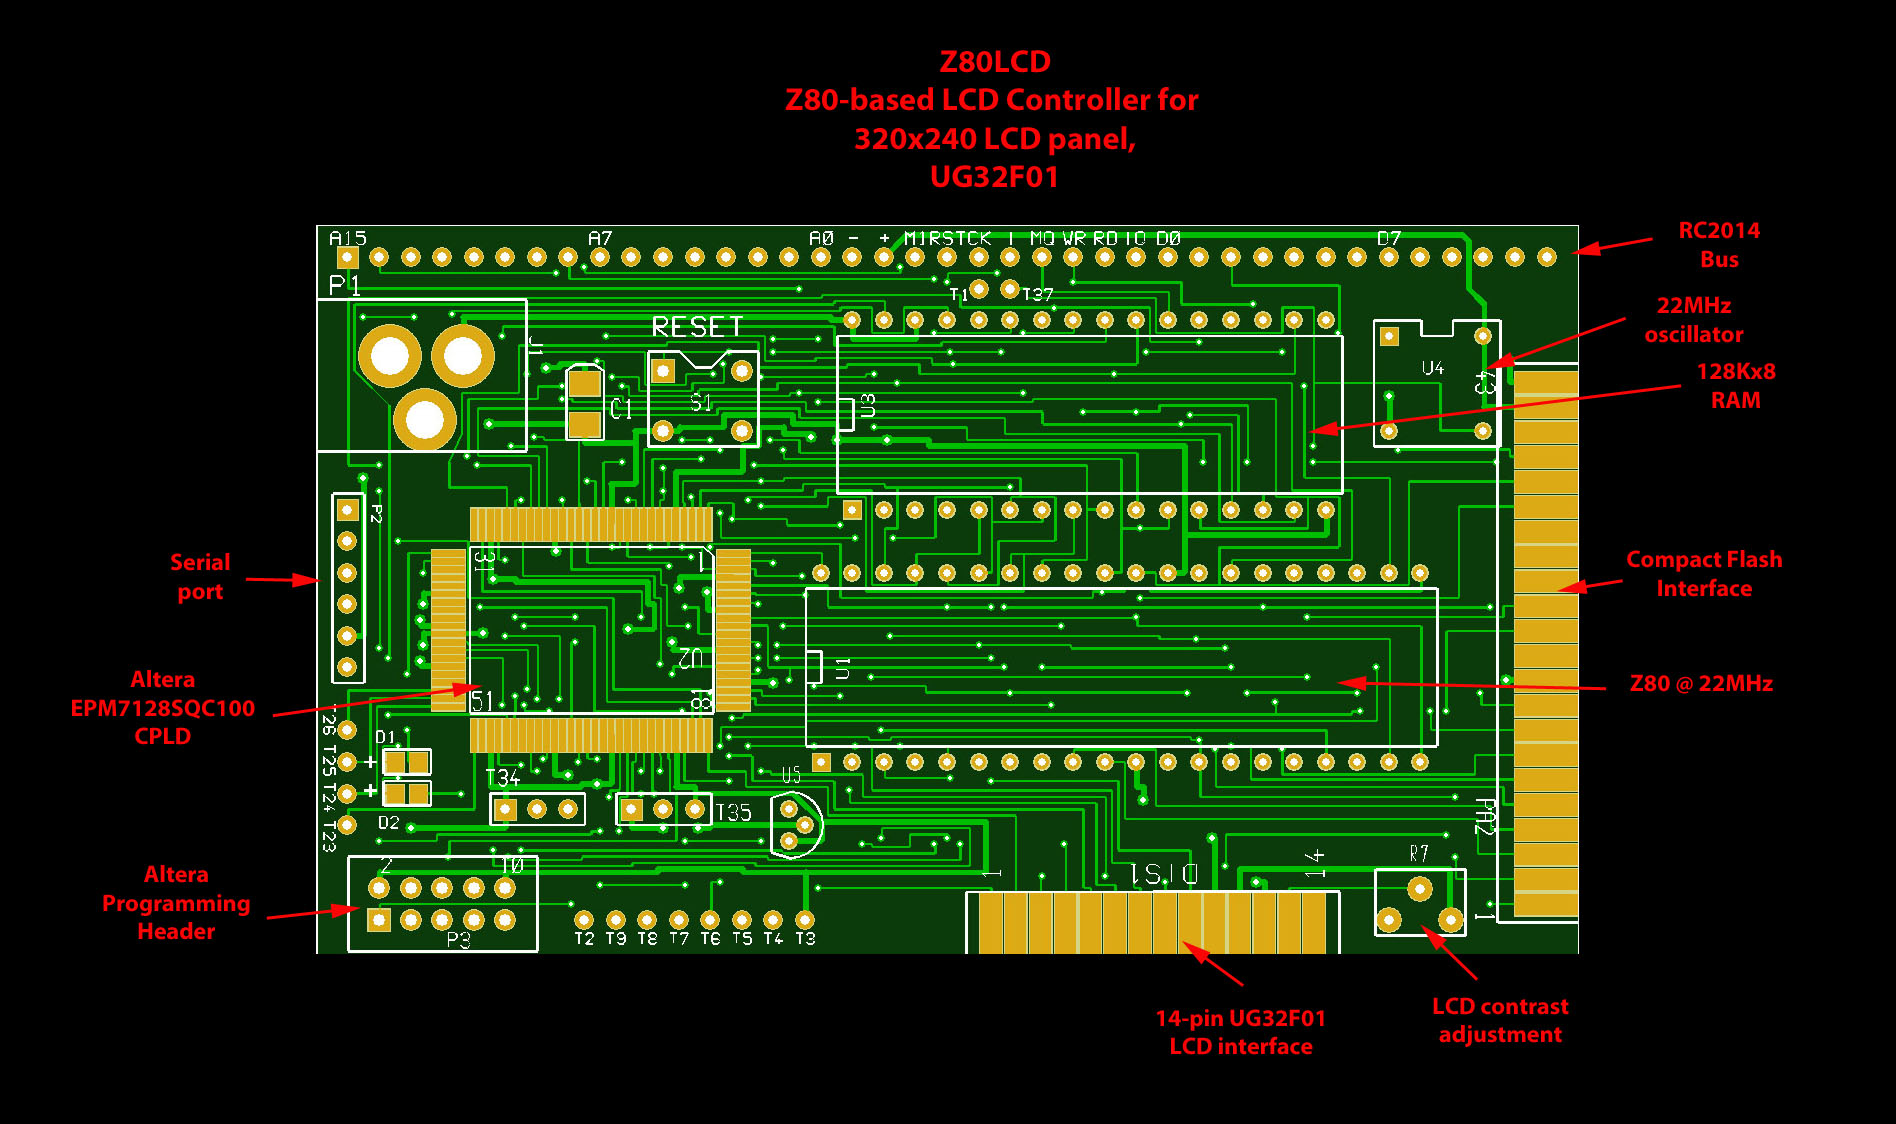 www.retrobrewcomputers.org_lib_plugins_ckgedit_fckeditor_userfiles_image_builderpages_plasmo_z80lcd_z80lcd_annotated.jpg